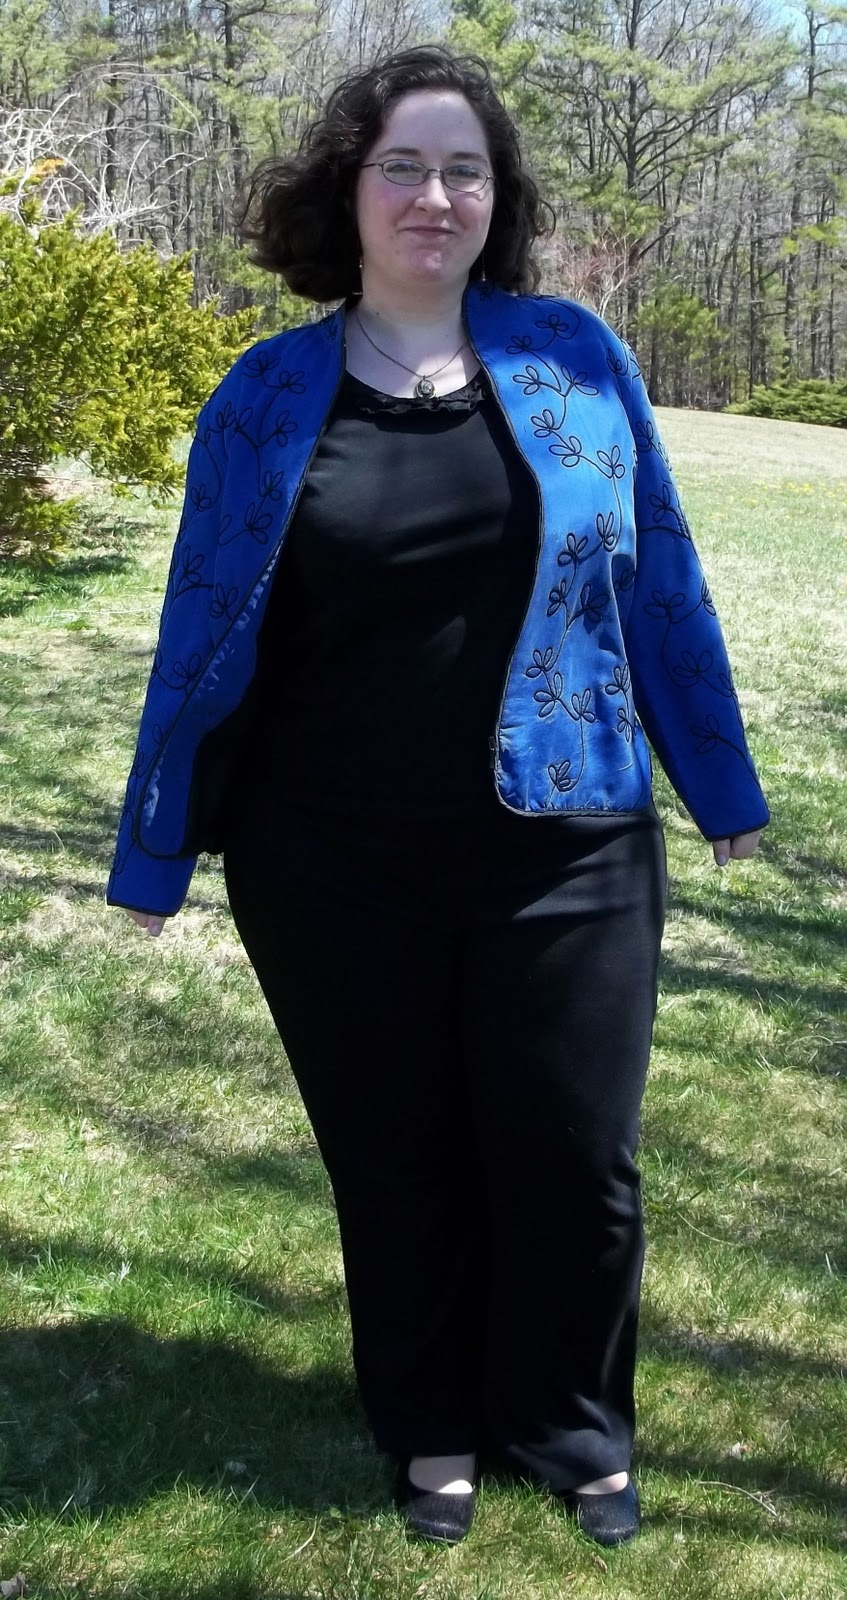 plus size curves ahead interview outfit the interviewer called me back for the second round of interviews 1 1 2 hours after i finished the first one blazer chico s top merona